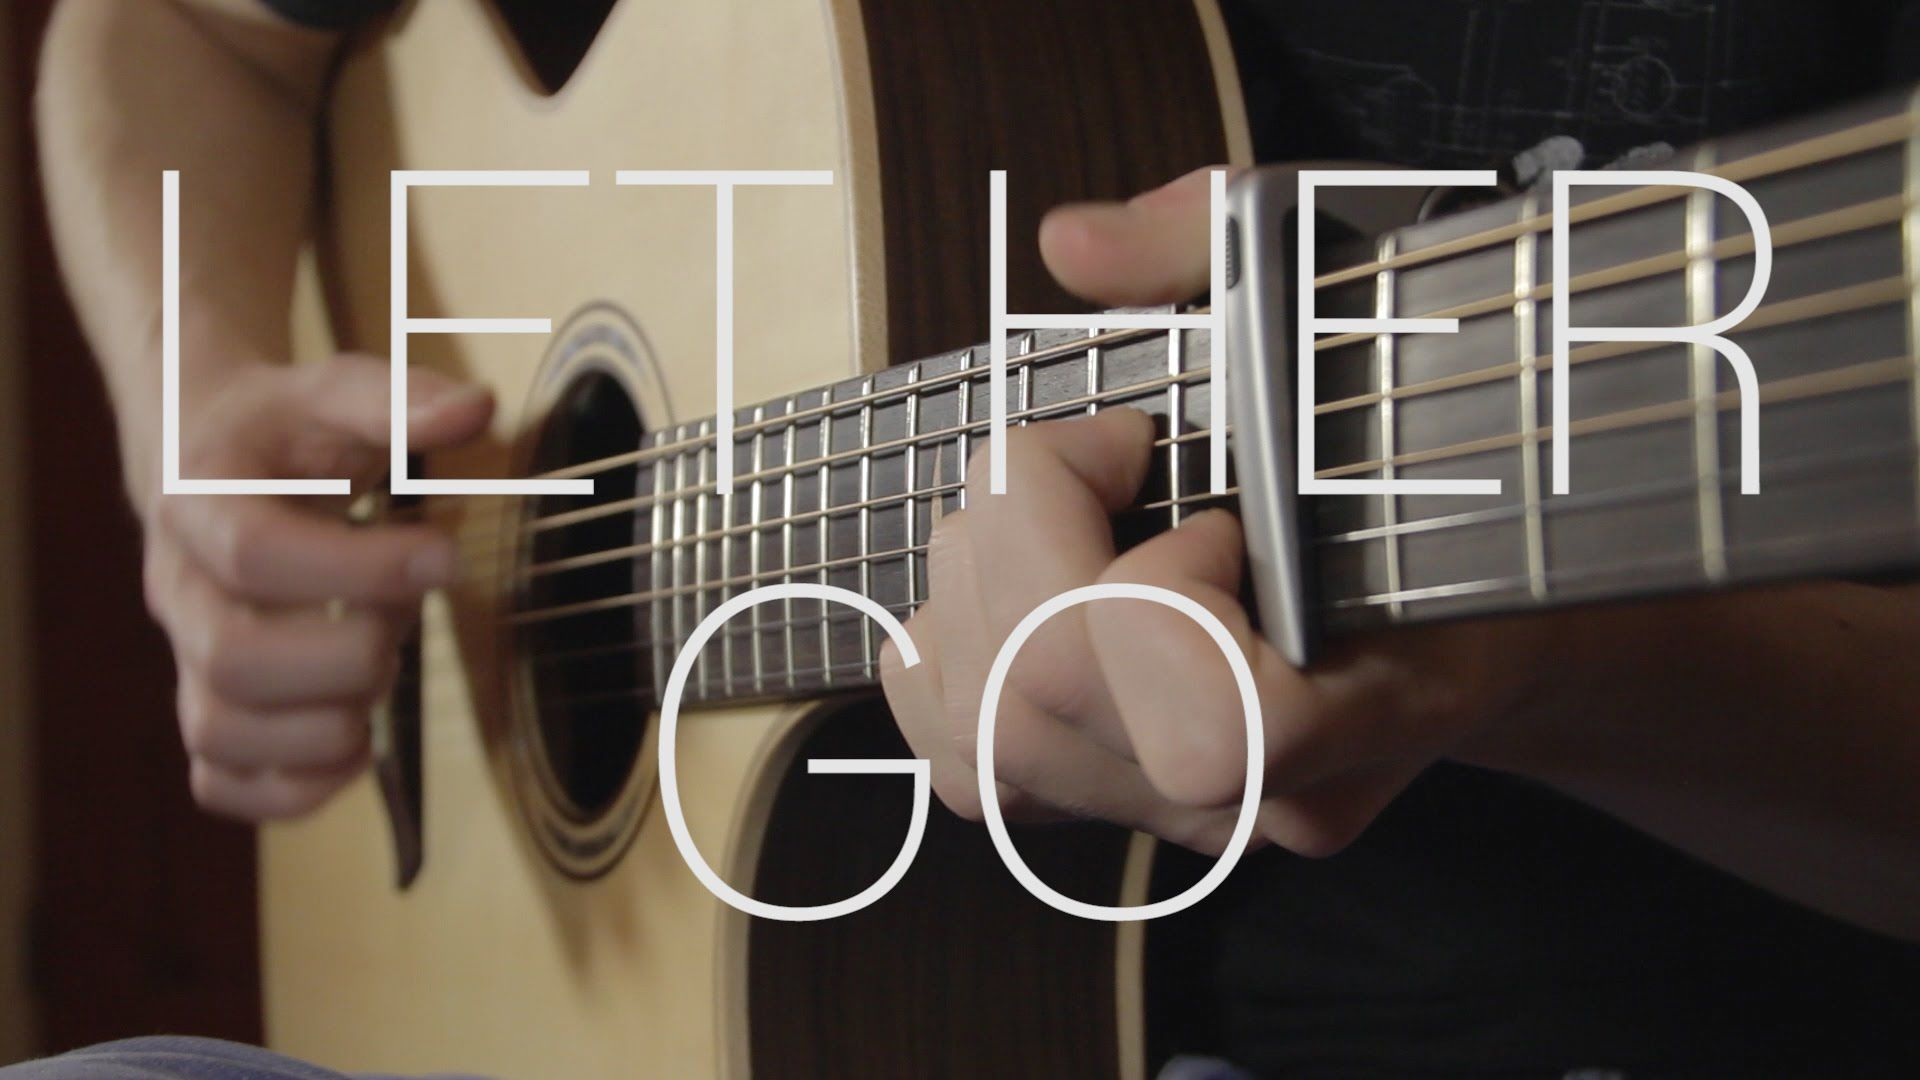 Passenger Let Her Go Fingerstyle Guitar Cover With Tabs Fingerstyle Guitar Passenger Let Her Go Guitar